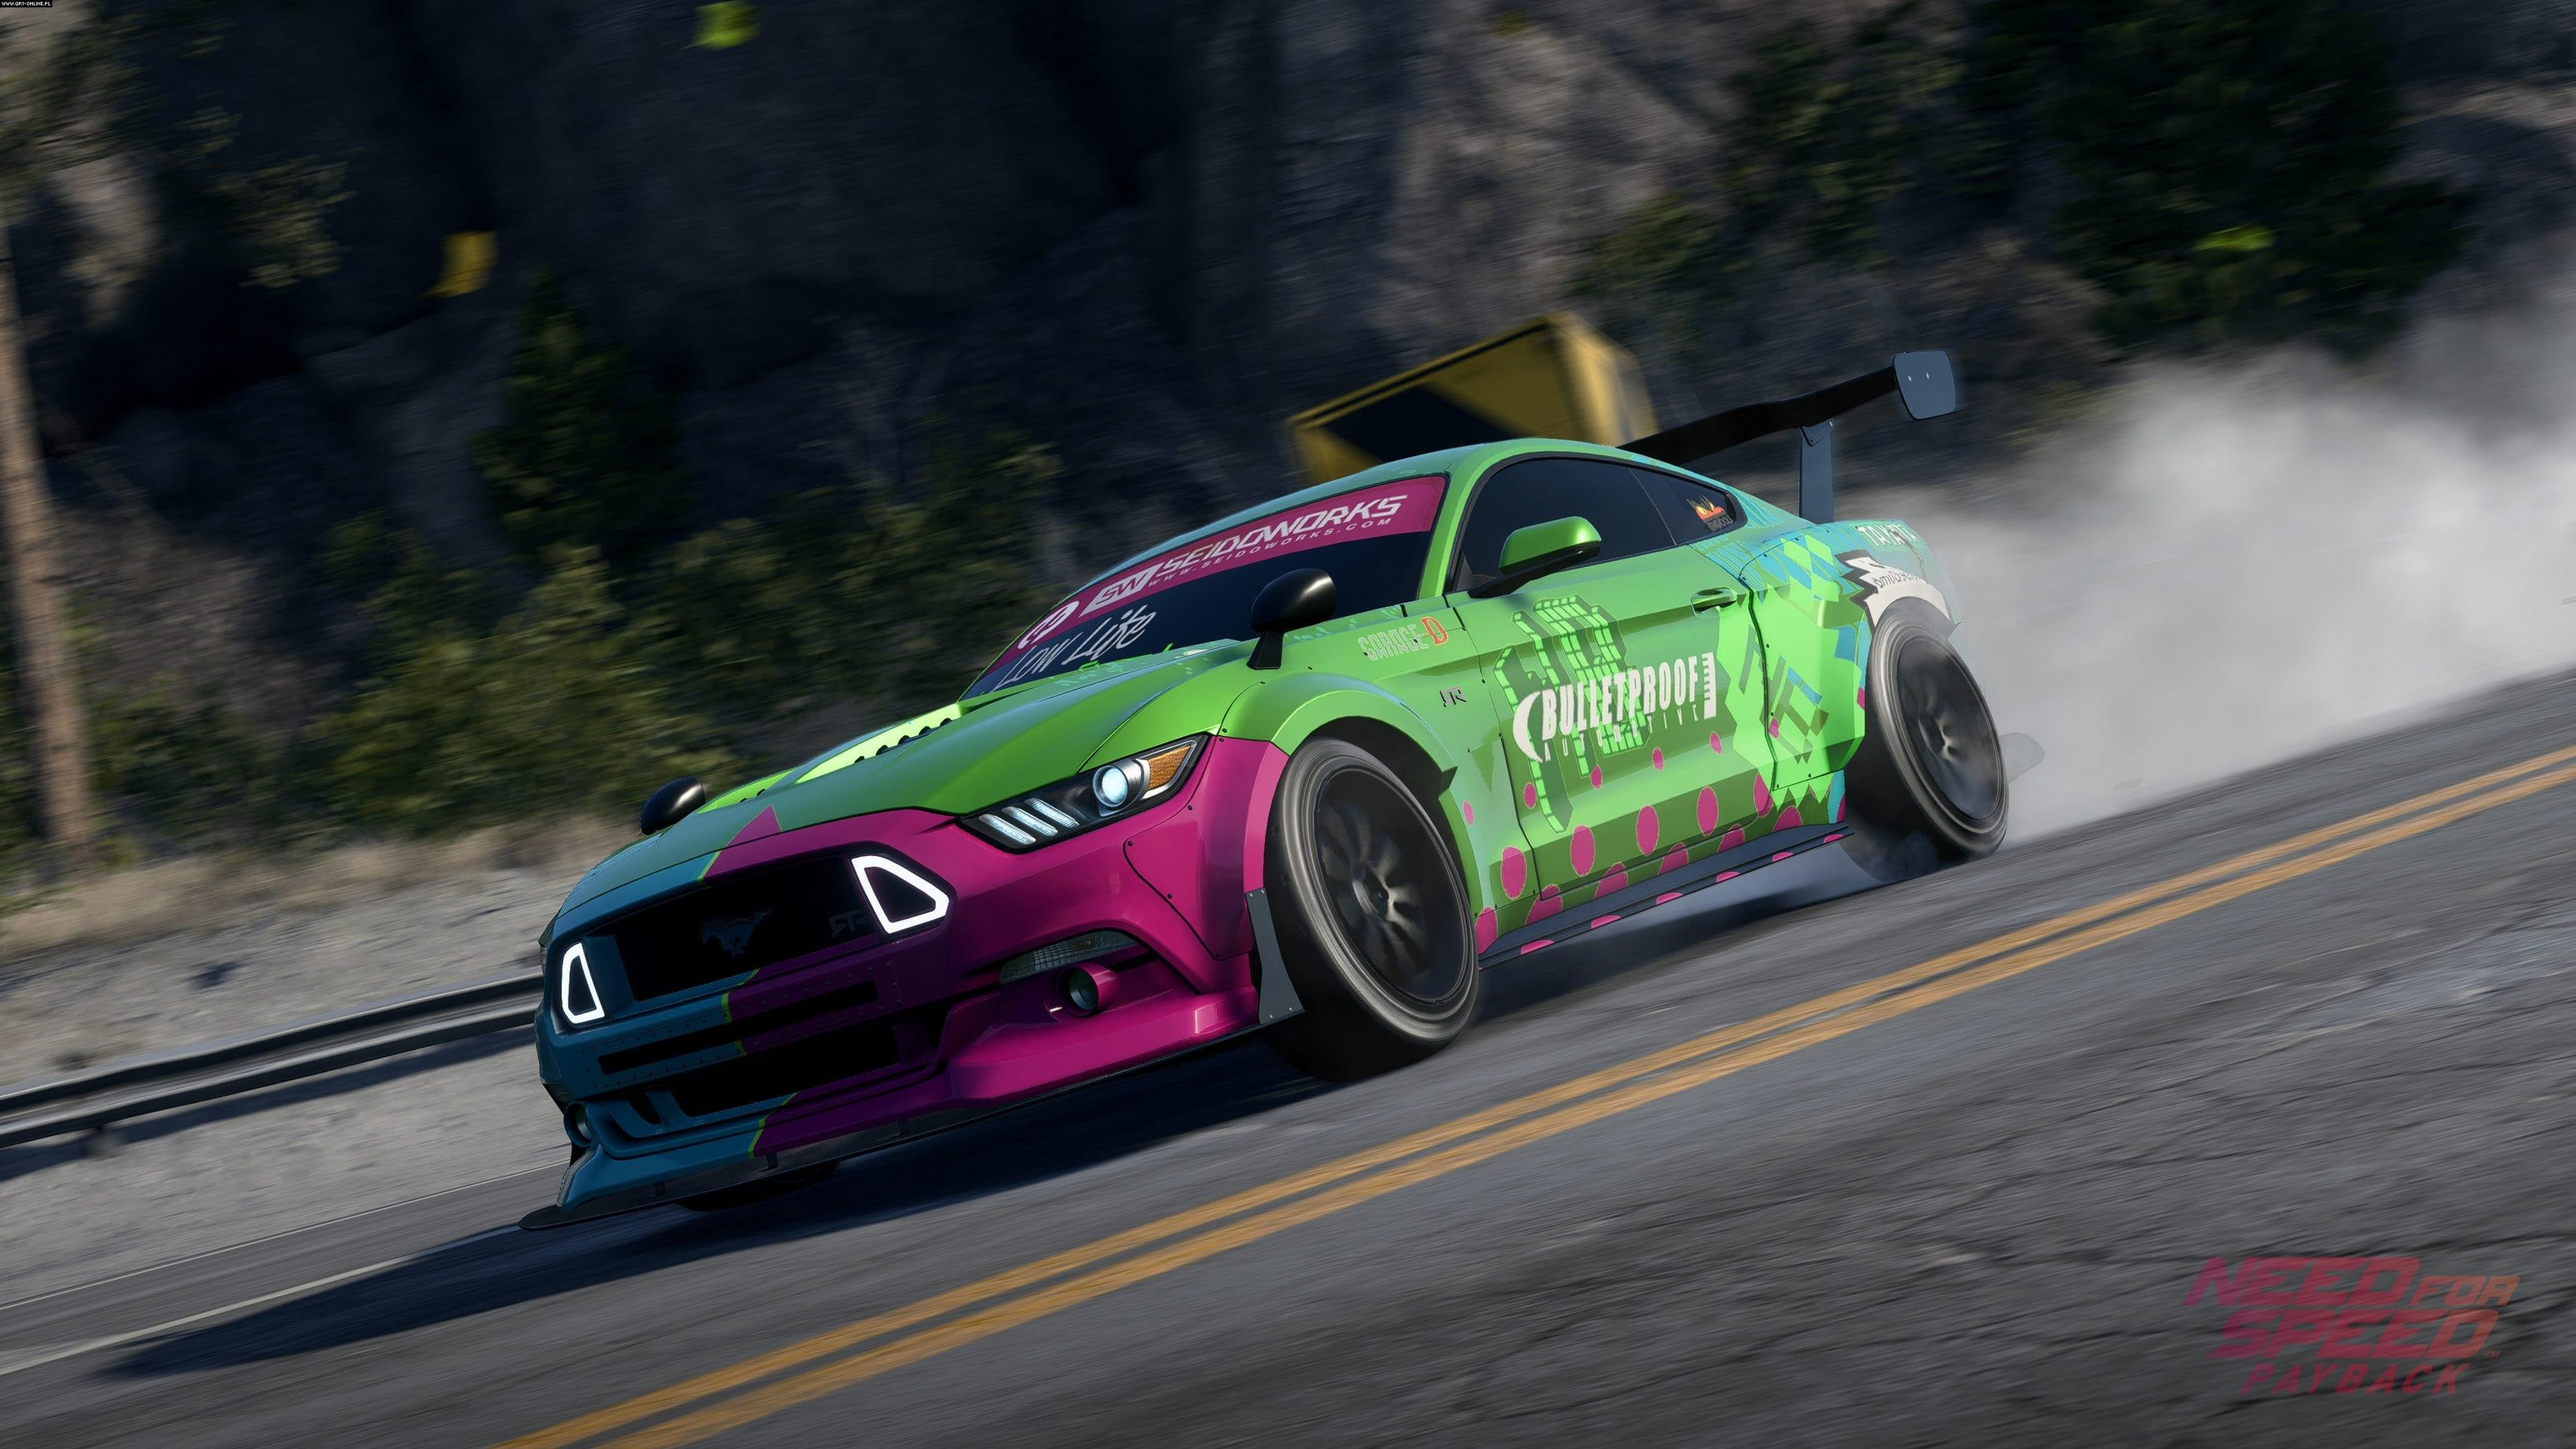 Need For Speed Payback Wallpaper: NFS Payback Wallpapers